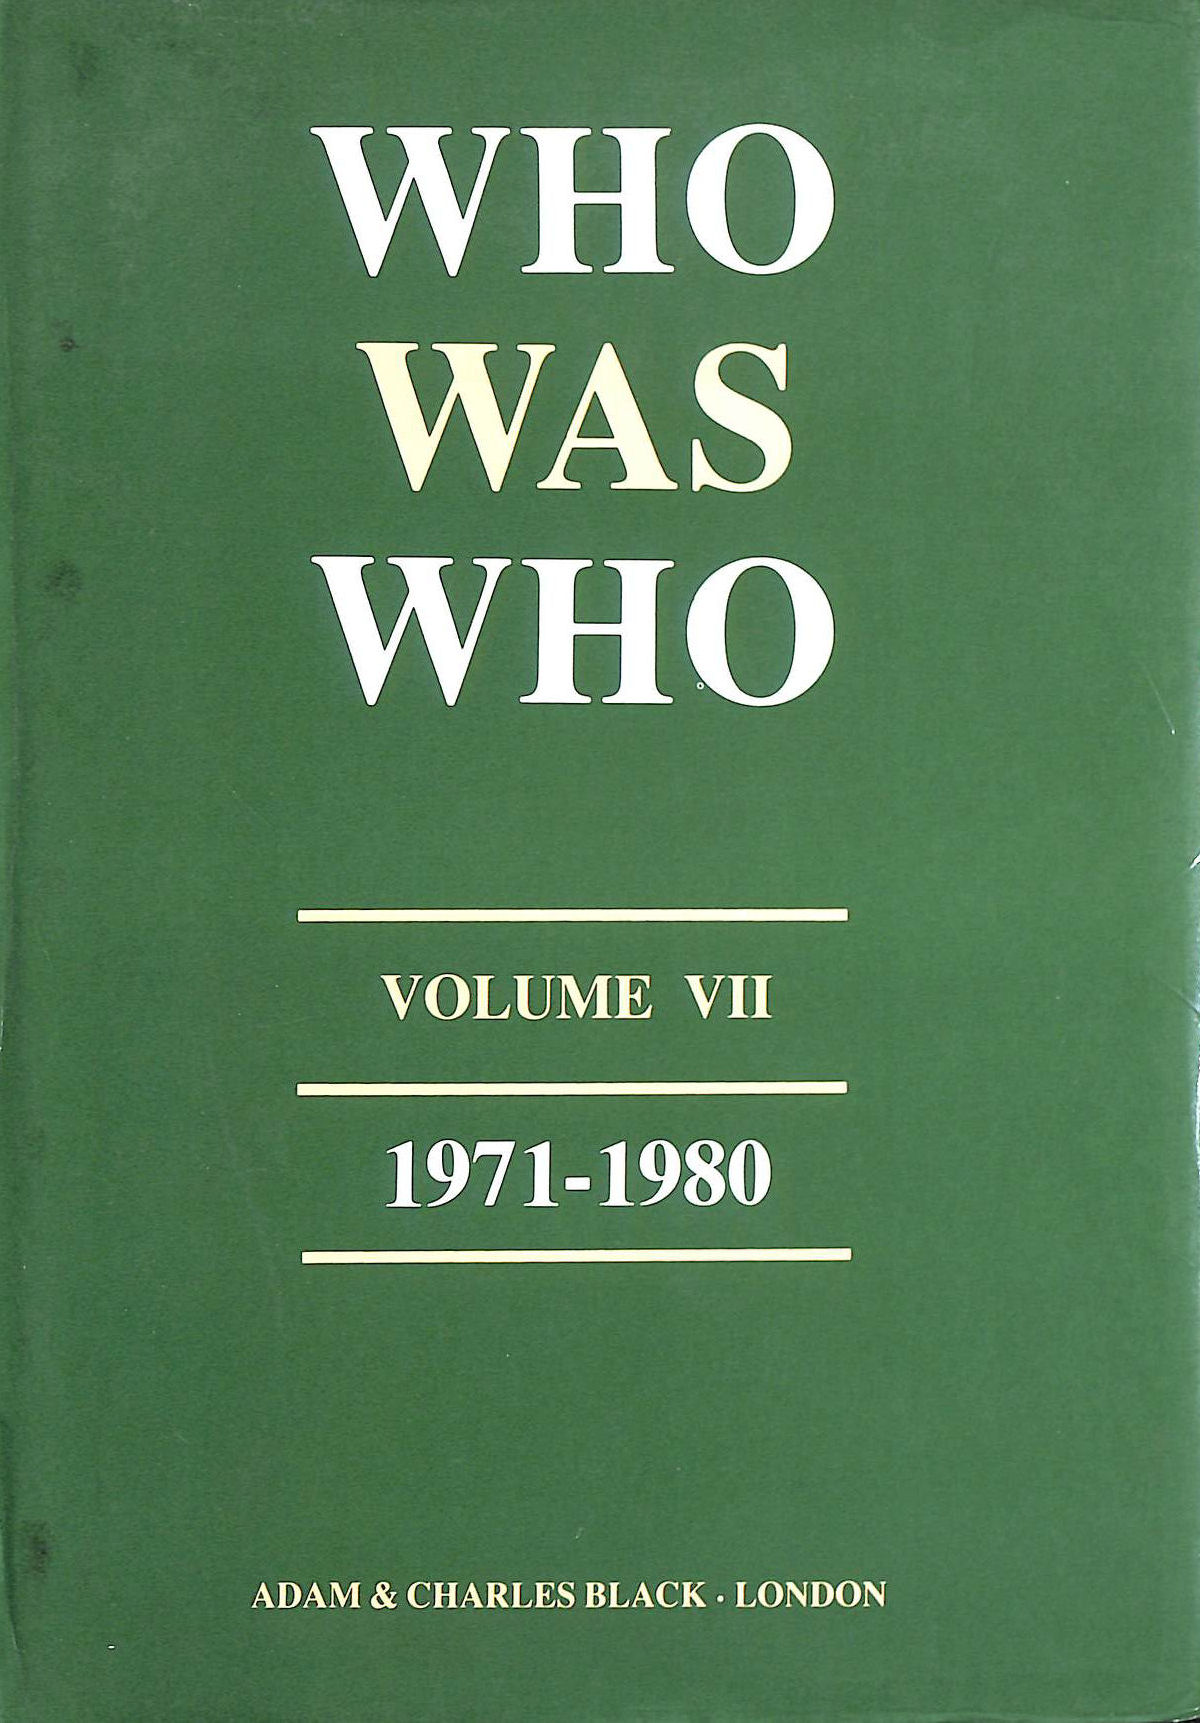 Image for Who Was Who, Vol. 7: A Companion to Who's Who containing the Biographies of Those Who Died During the Decade 1971-1980: 1971-80 v. 7